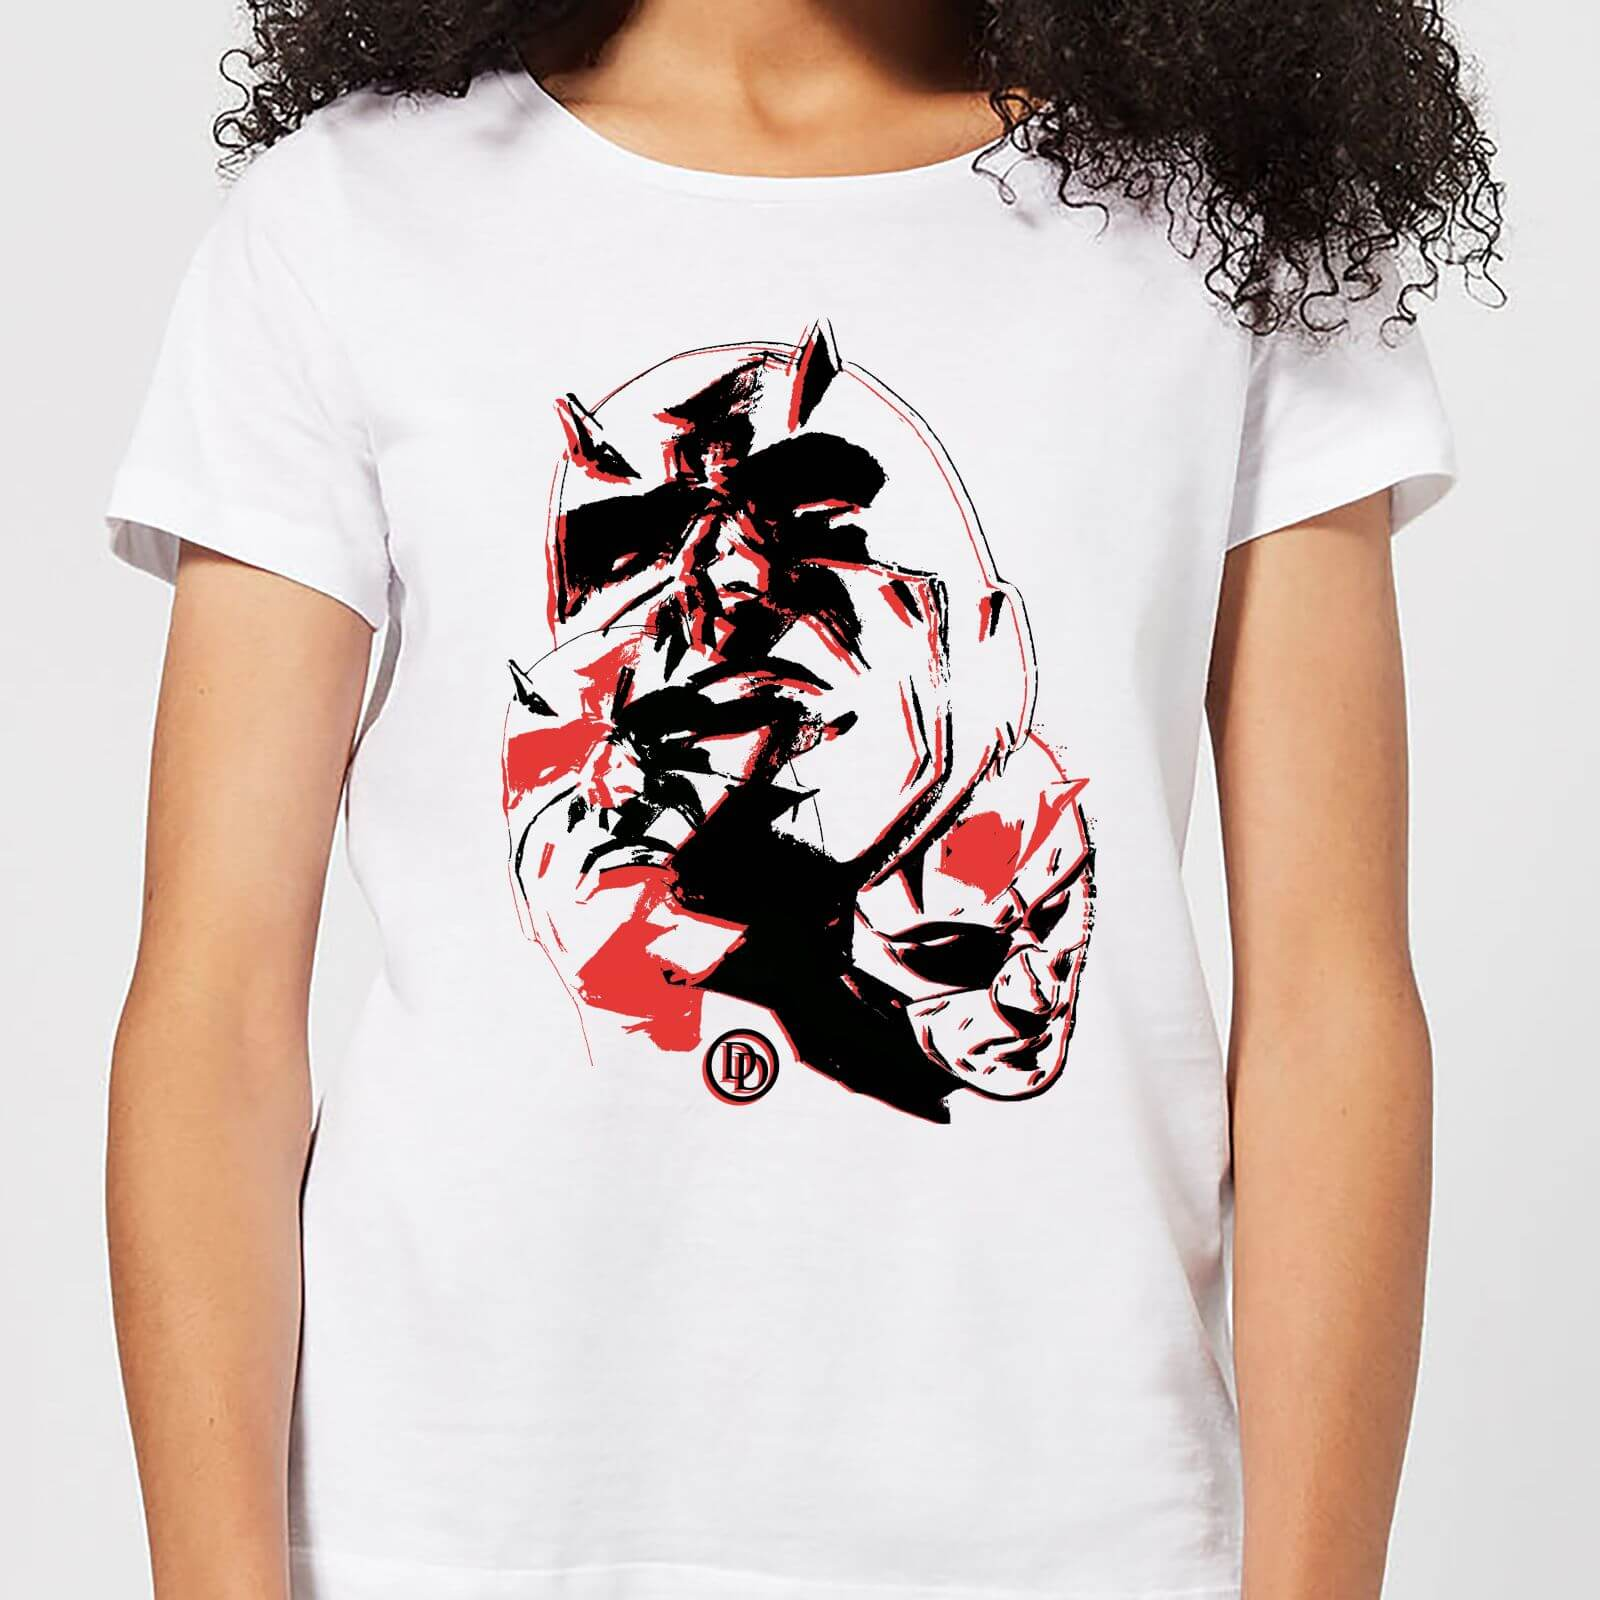 OfferteWeb.click 32-t-shirt-marvel-knights-daredevil-layered-faces-bianco